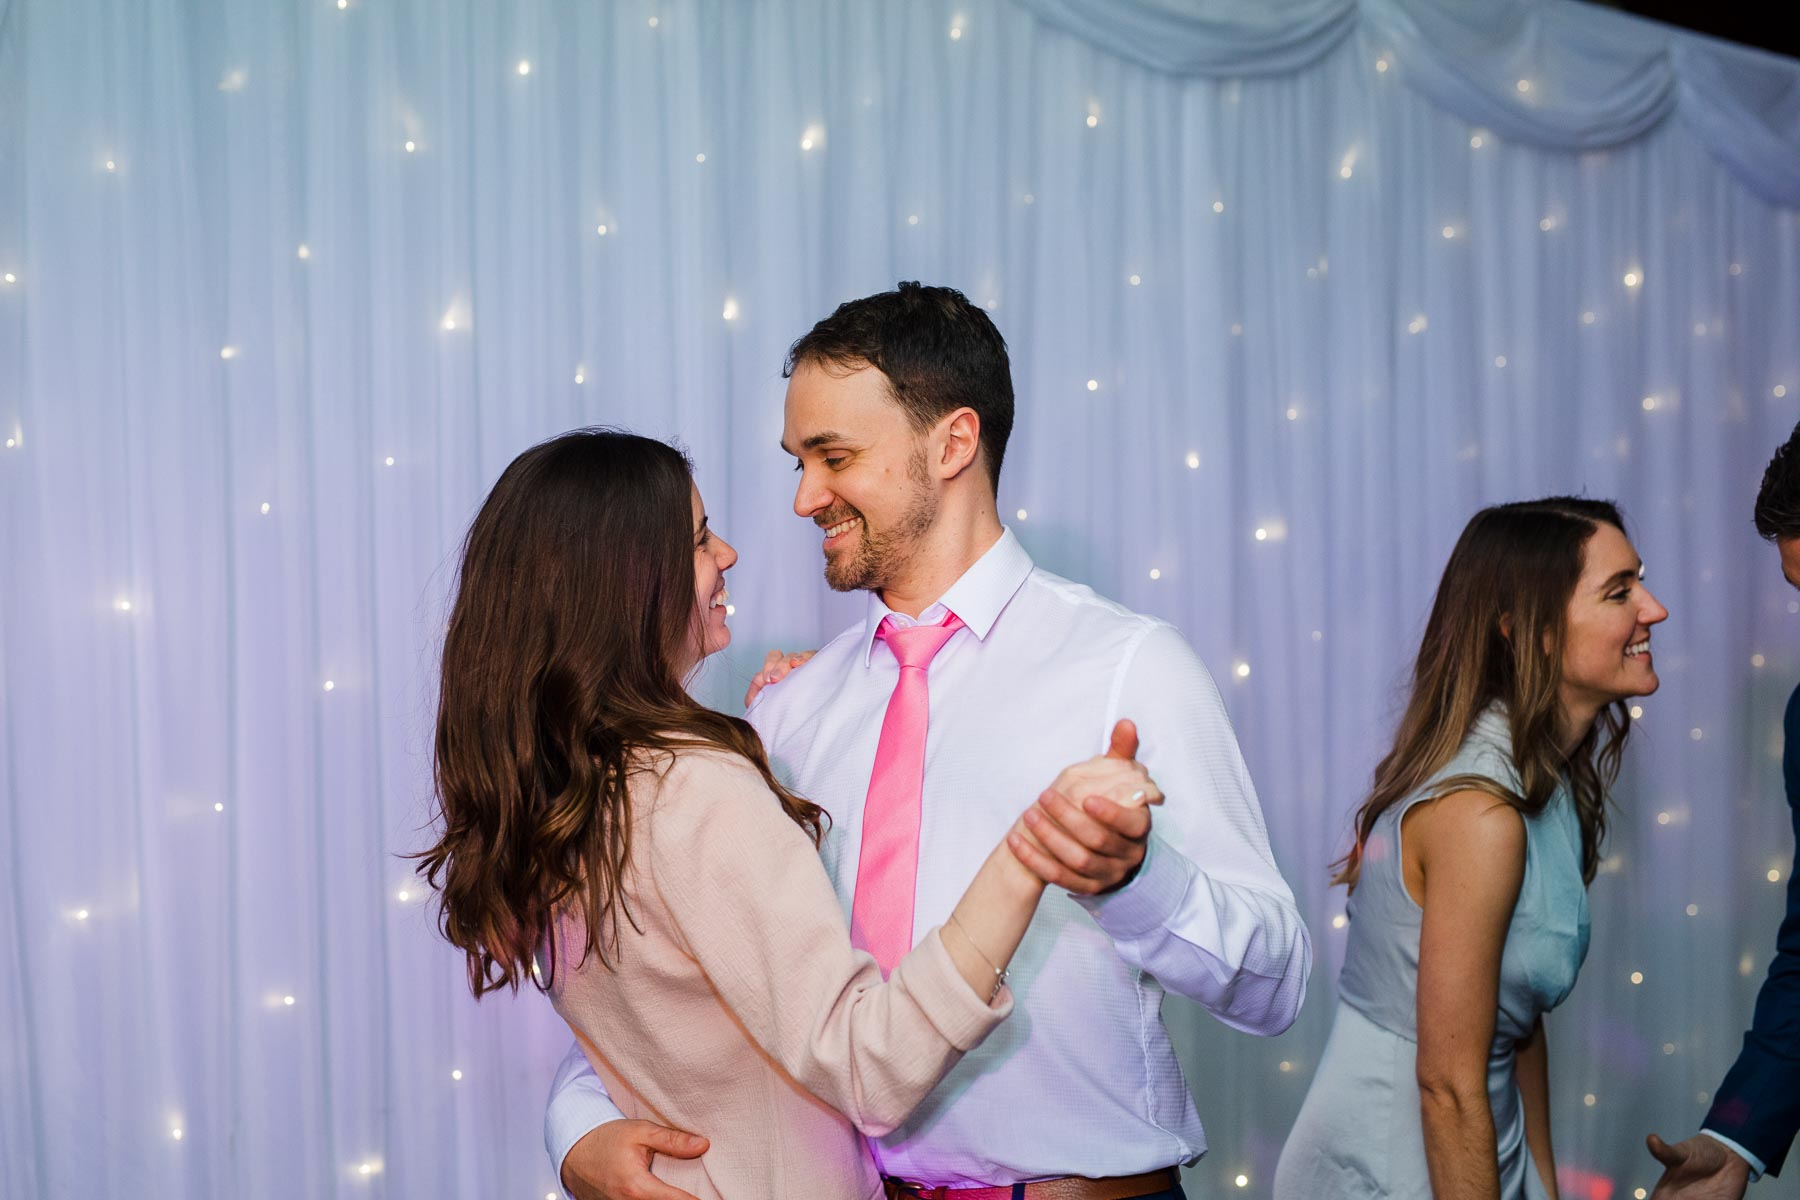 Wedding guests looking dancing romantically on the dance floor